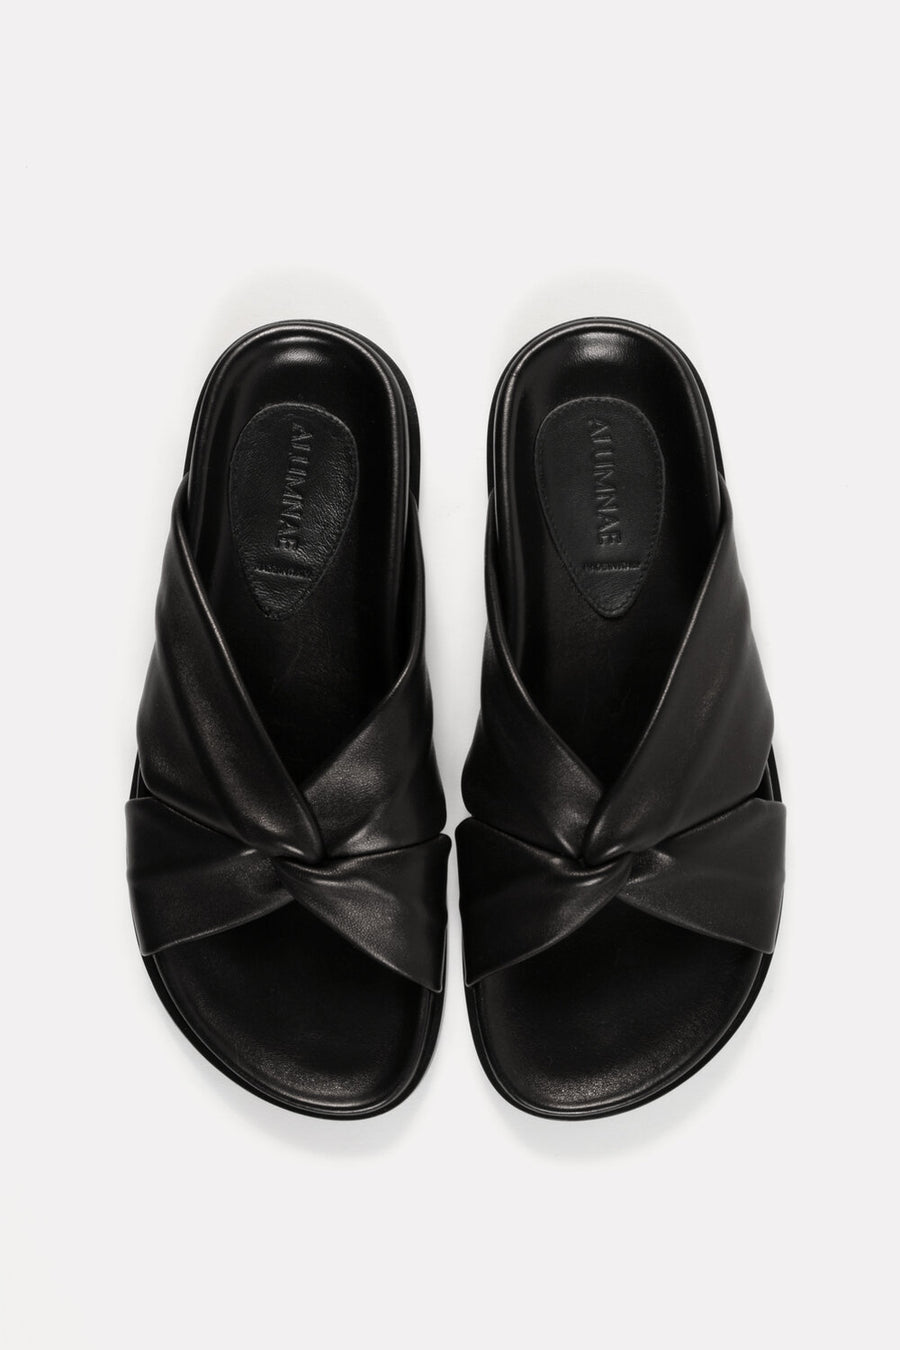 Turban Slide on Molded Footbed Black Nappa.